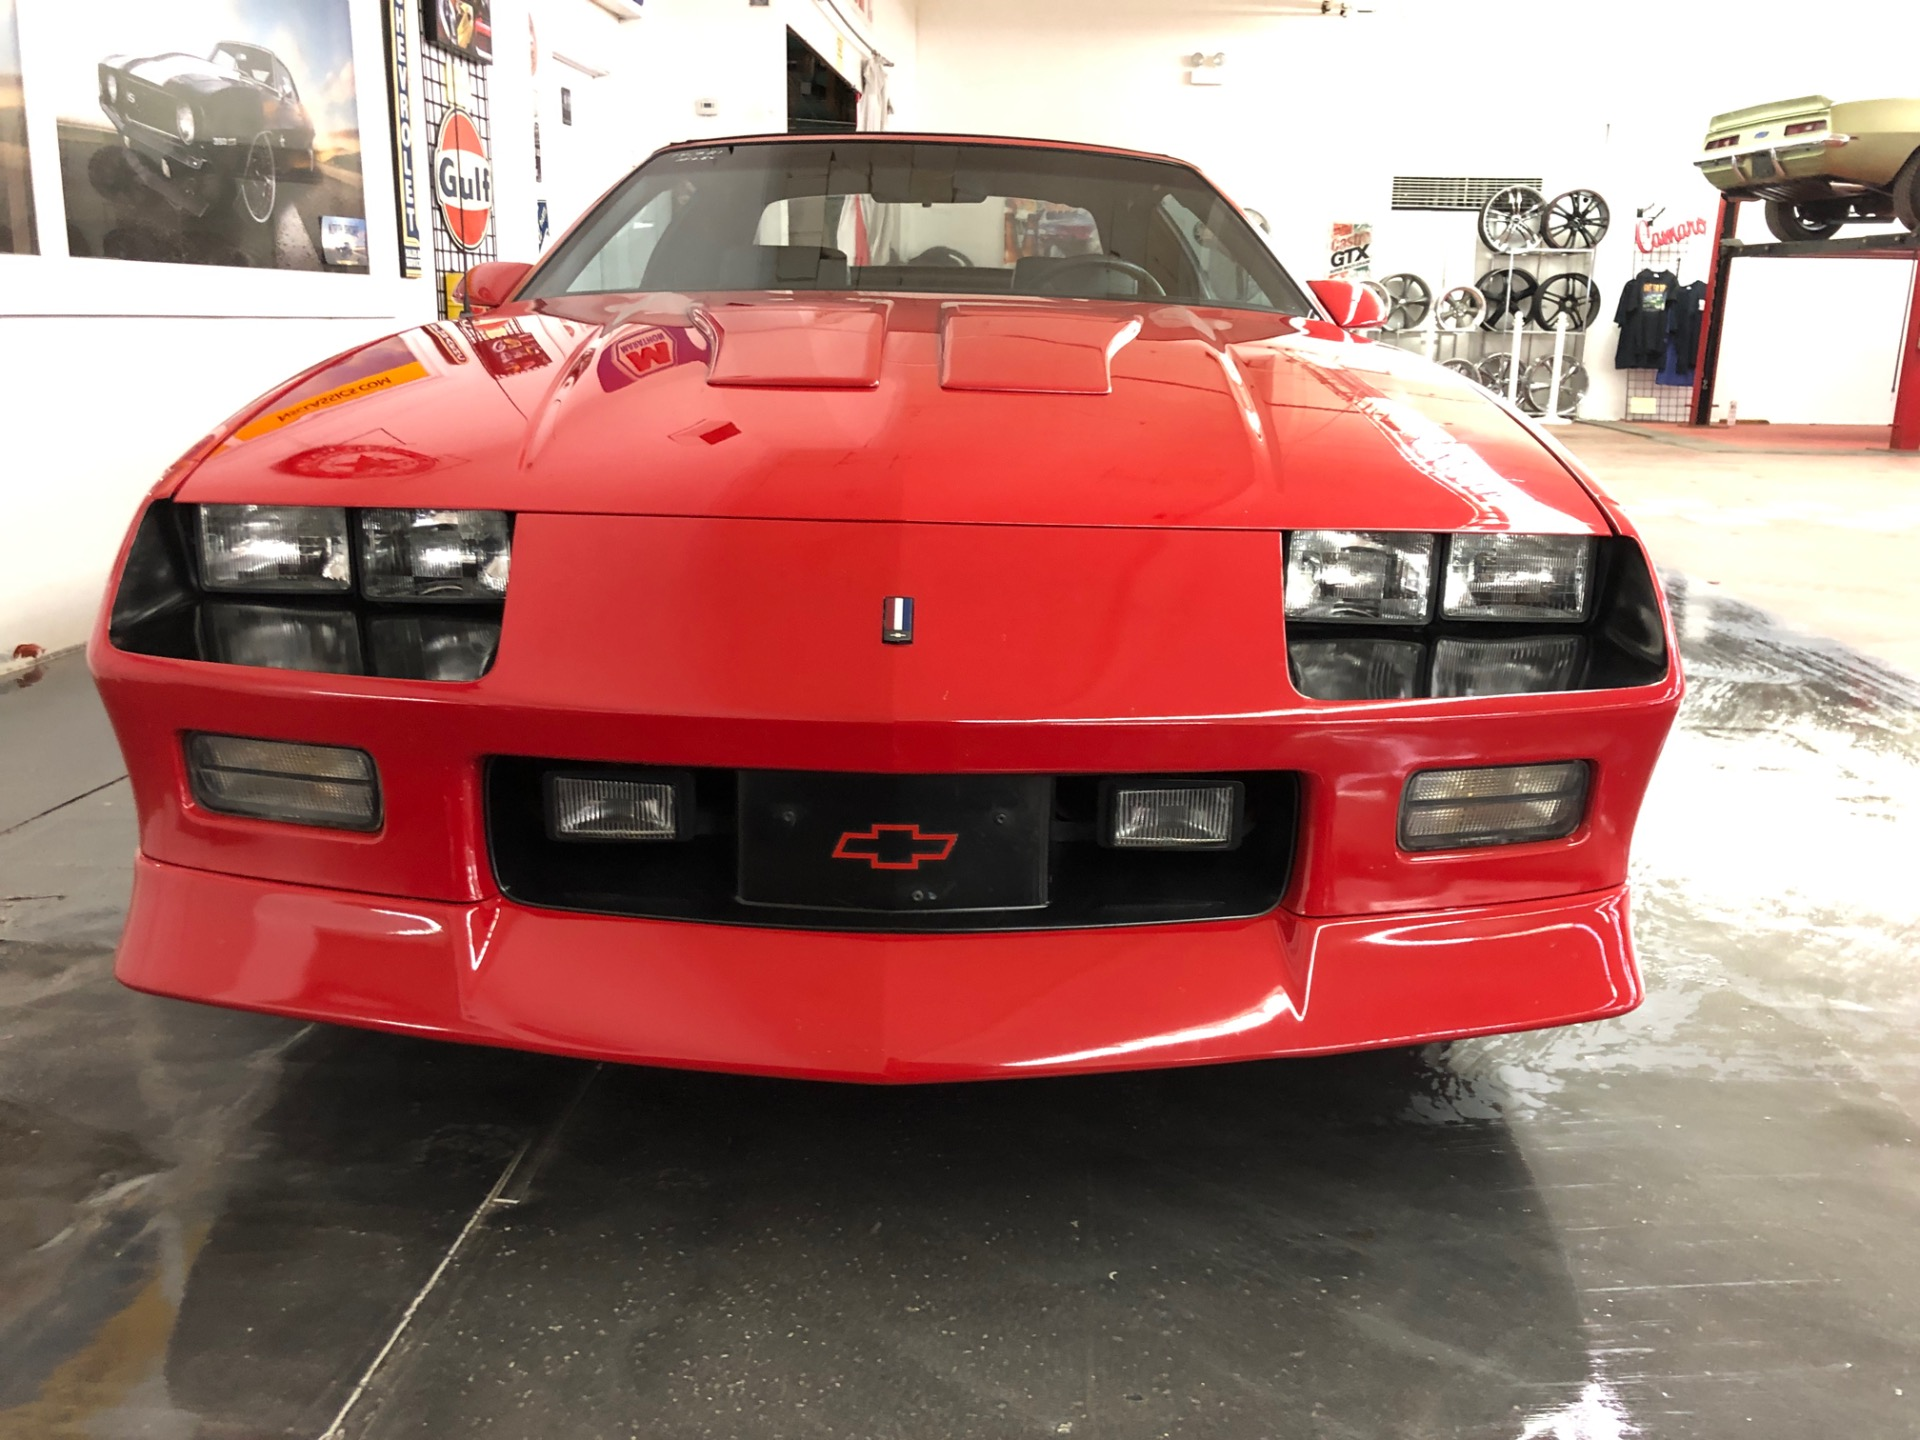 Used 1991 Chevrolet Camaro Z28-Only 14k Miles-Convertible-Southern Vehicle- Modern Muscle Car-VIDEO | Mundelein, IL